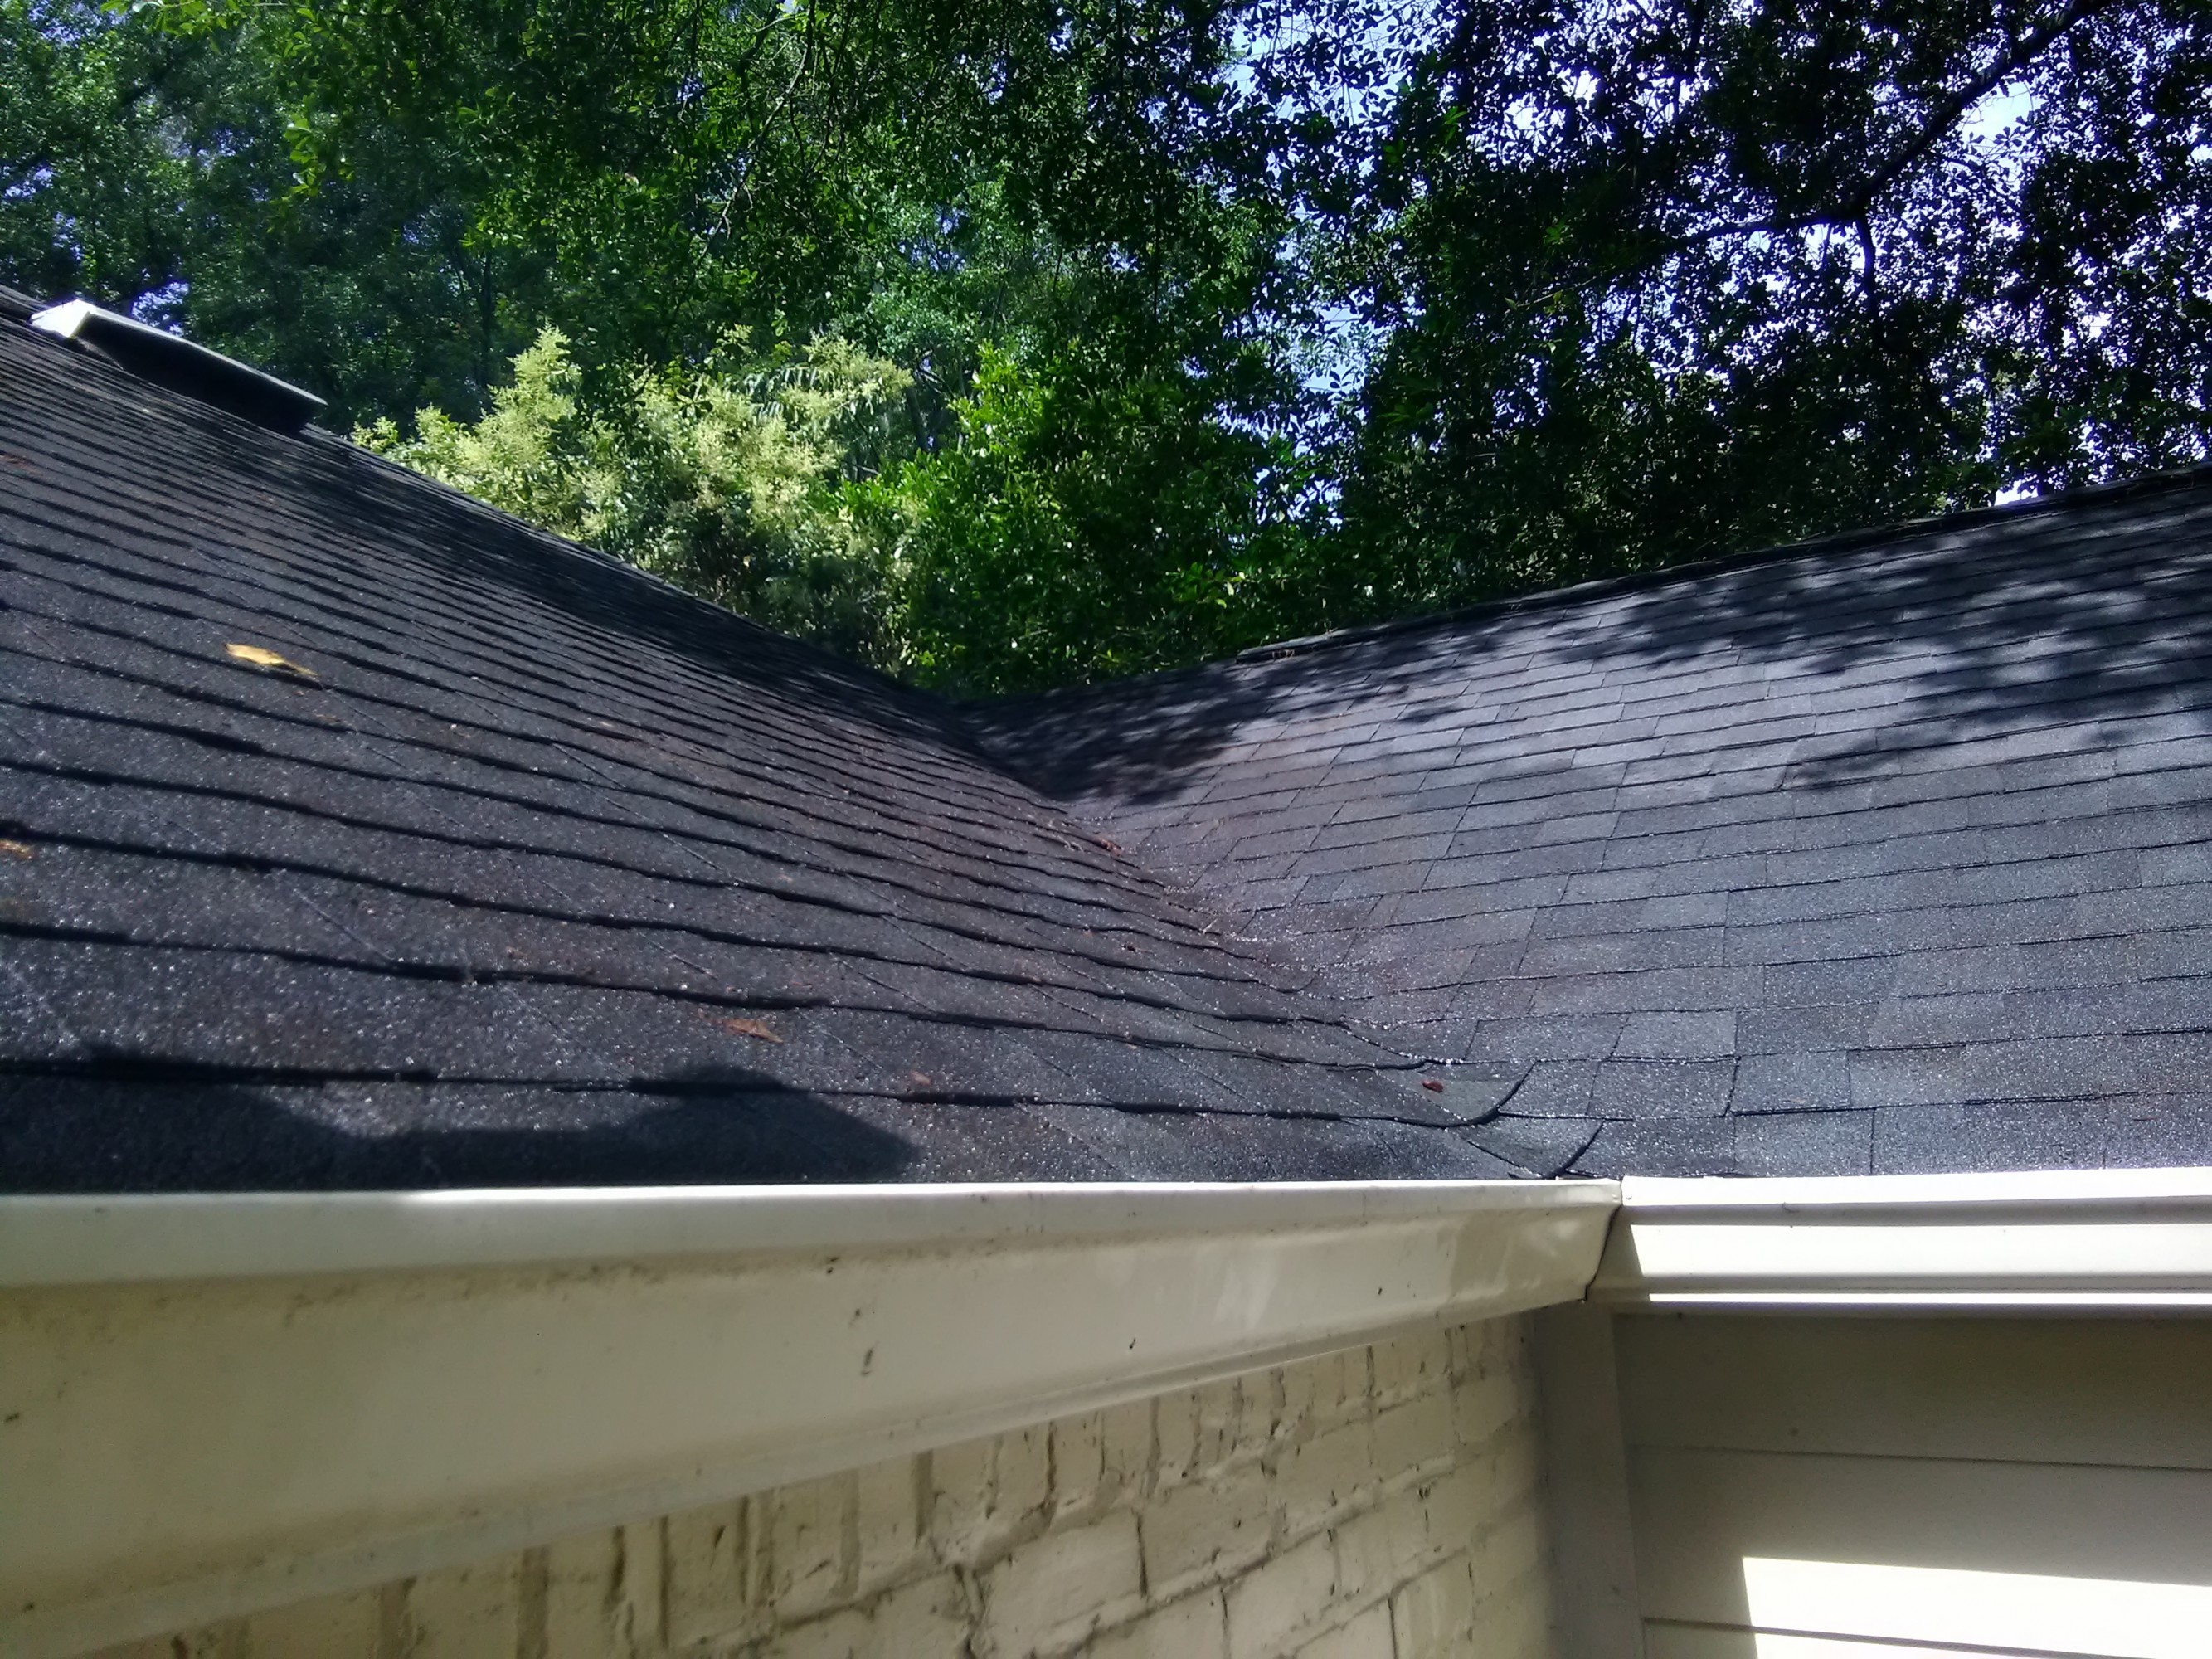 Are Seamless Gutters Better Than Sectional Gutters? | Clean